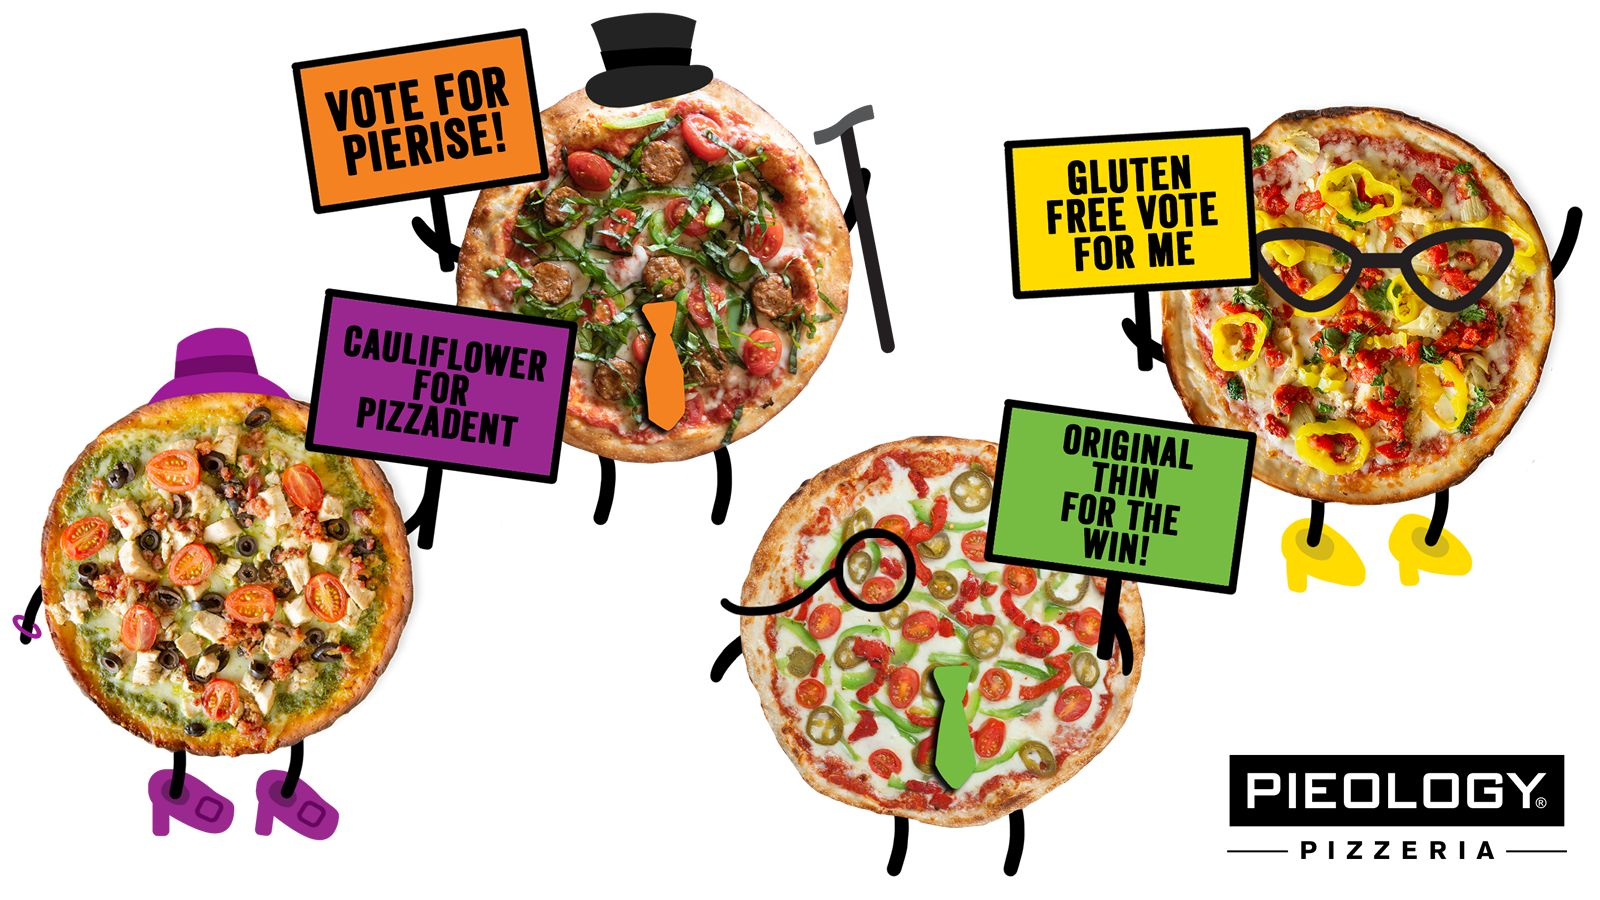 Pieology Rewards Voters with Personalized Pizza